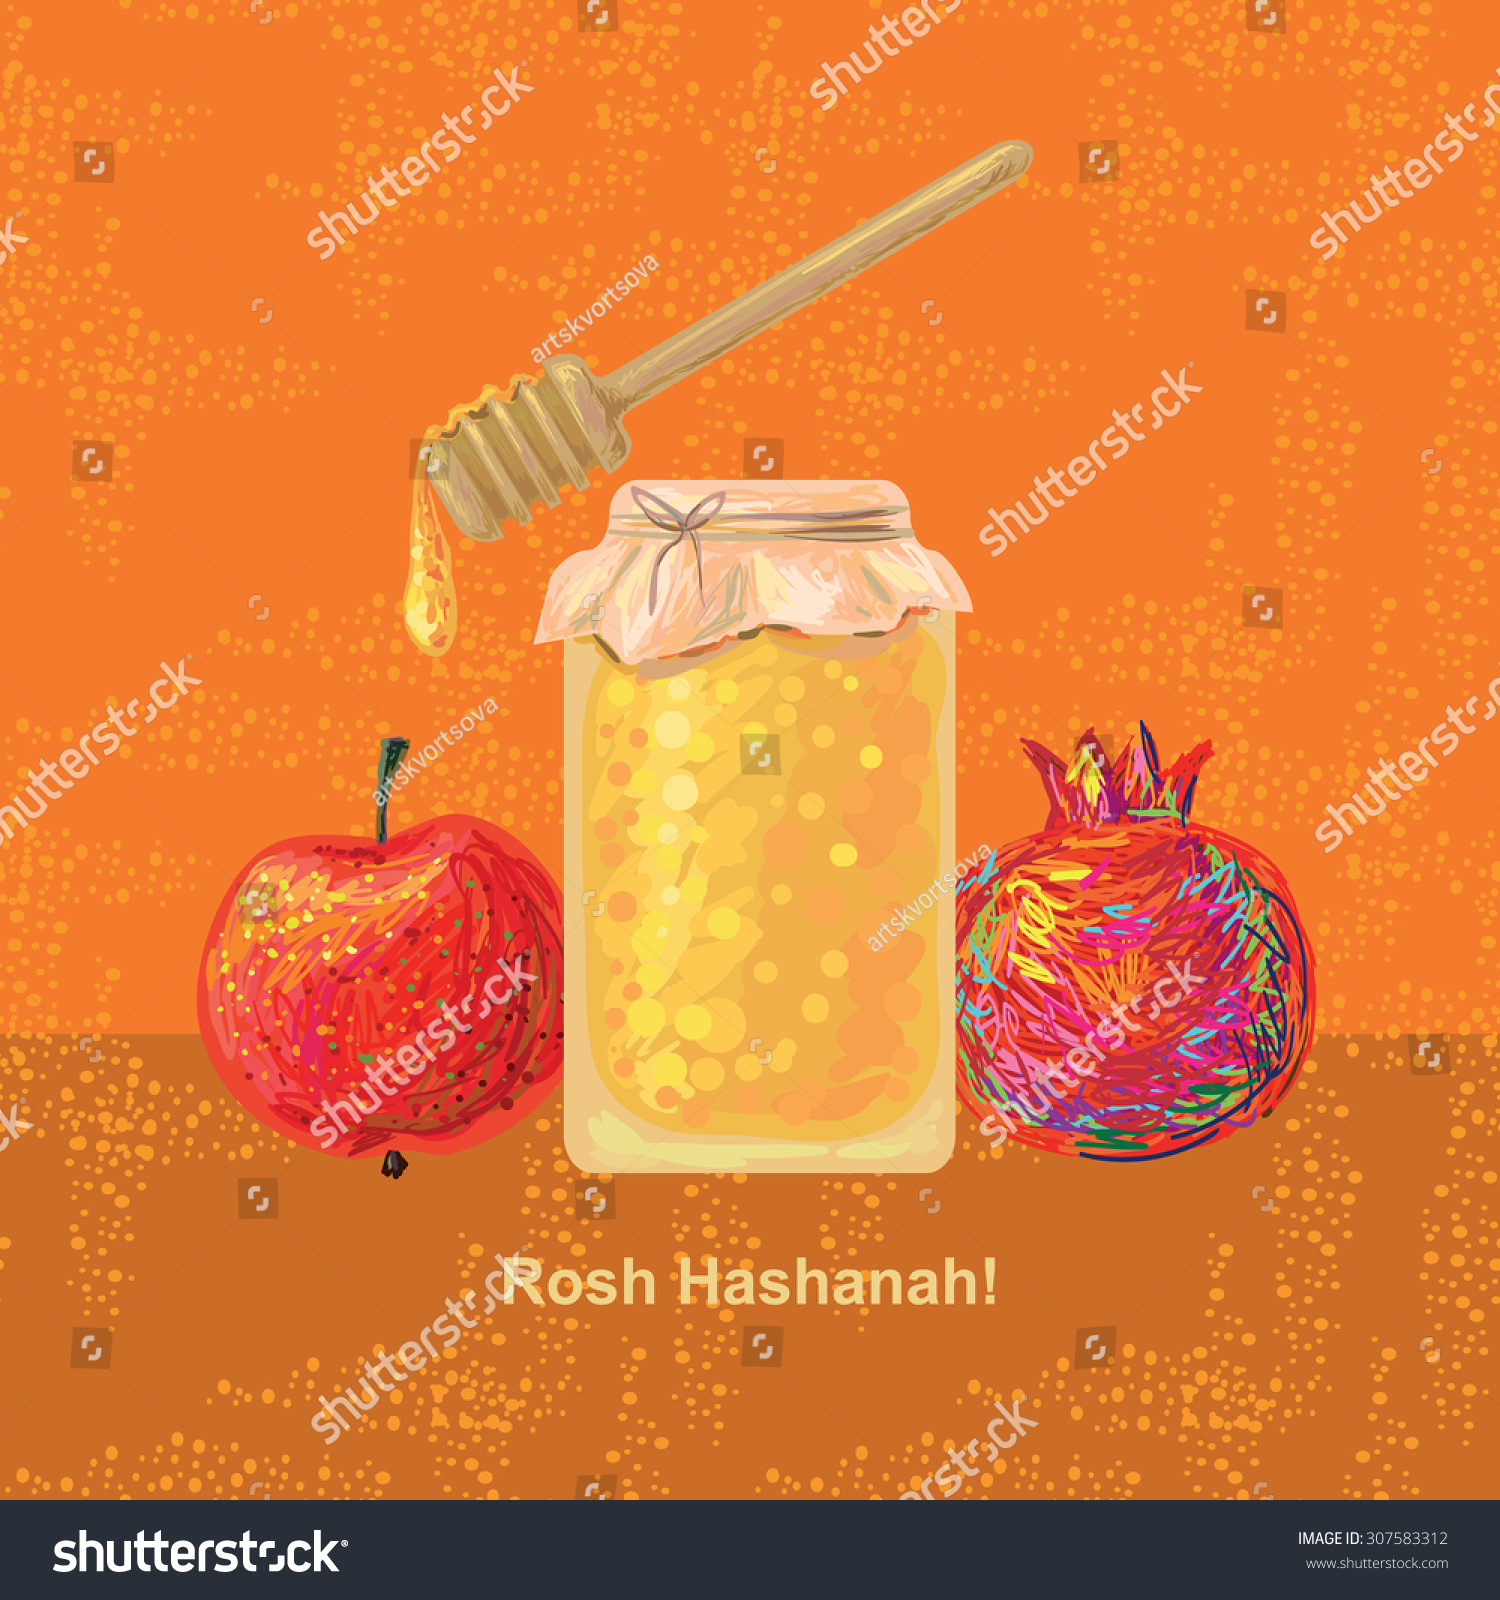 Greeting card design rosh hashanah jewish stock vector 307583312 greeting card design for rosh hashanah jewish new year holiday concept with traditional holiday symbols m4hsunfo